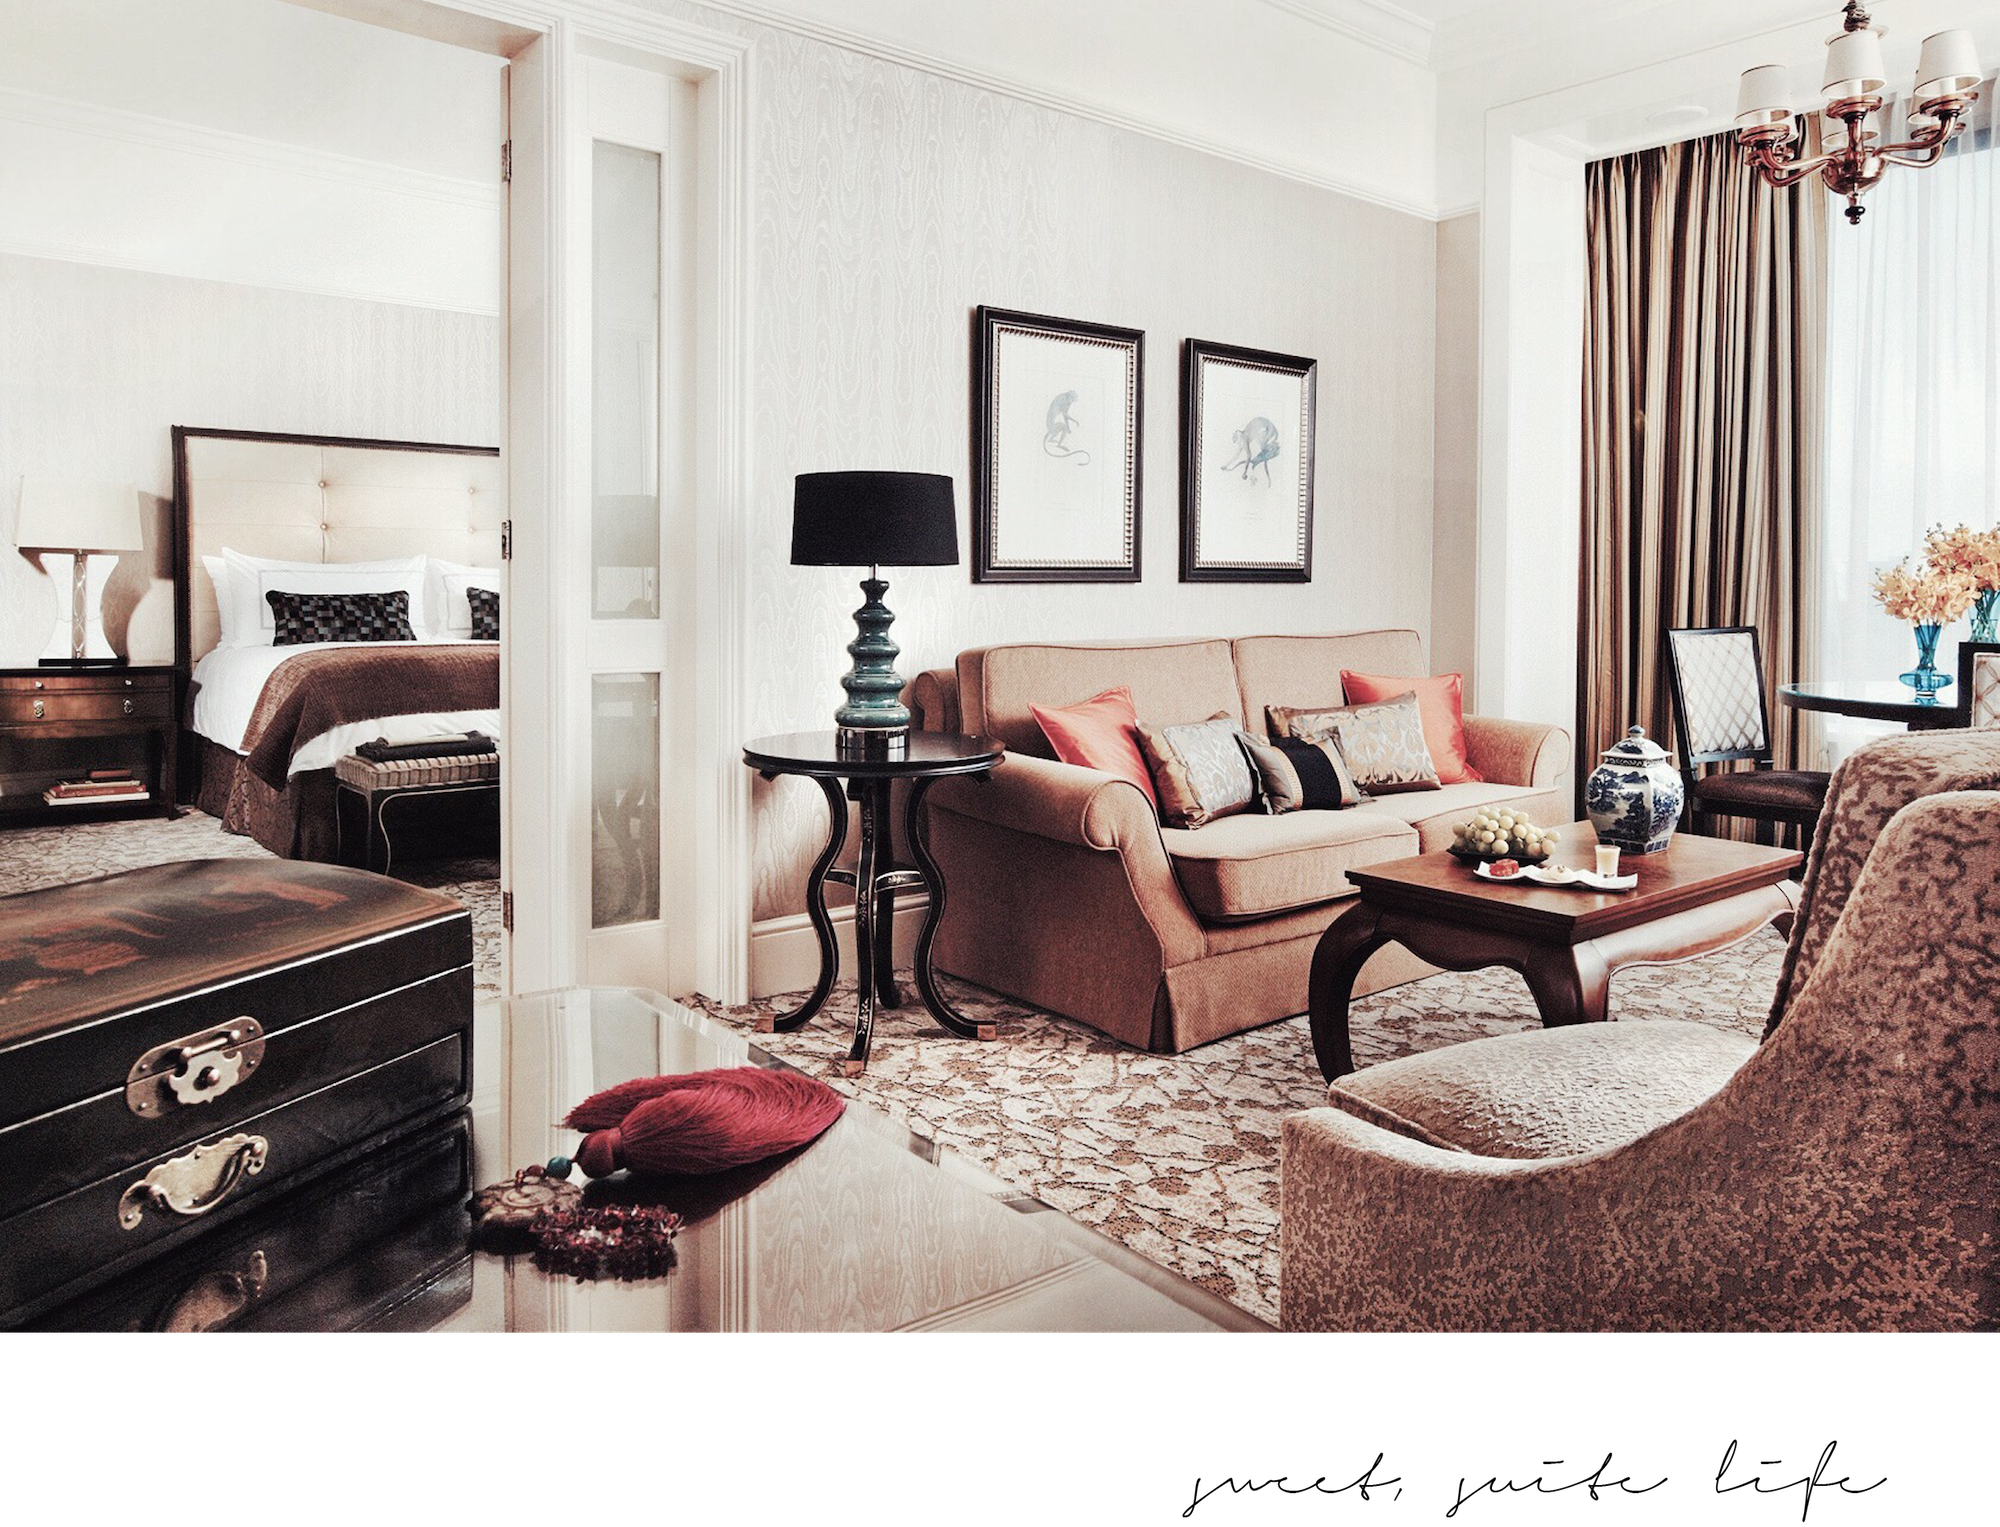 willabelle-ong-paledivision-street-style-fashion-travel-lifestyle-blog-four-seasons-hotel-singapore-editorial-retreat-luxury-suite-bedroom-2